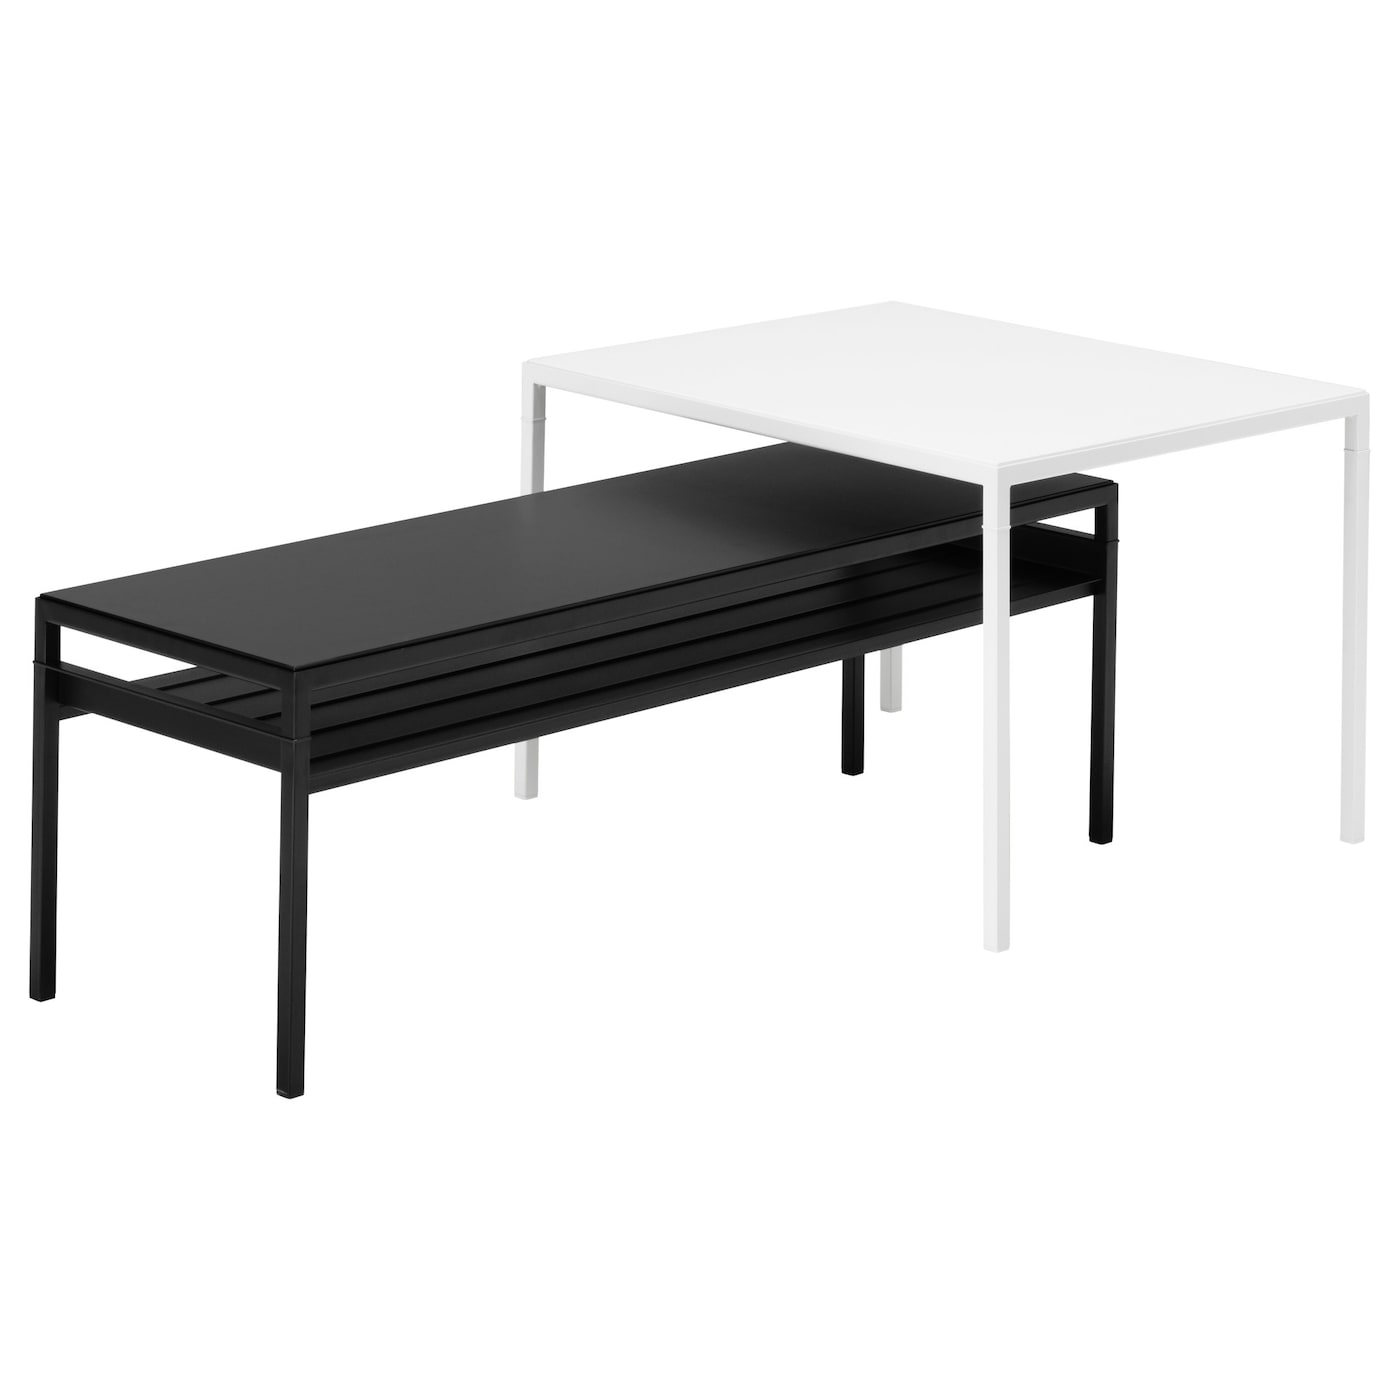 table basse design table basse relevable ikea. Black Bedroom Furniture Sets. Home Design Ideas